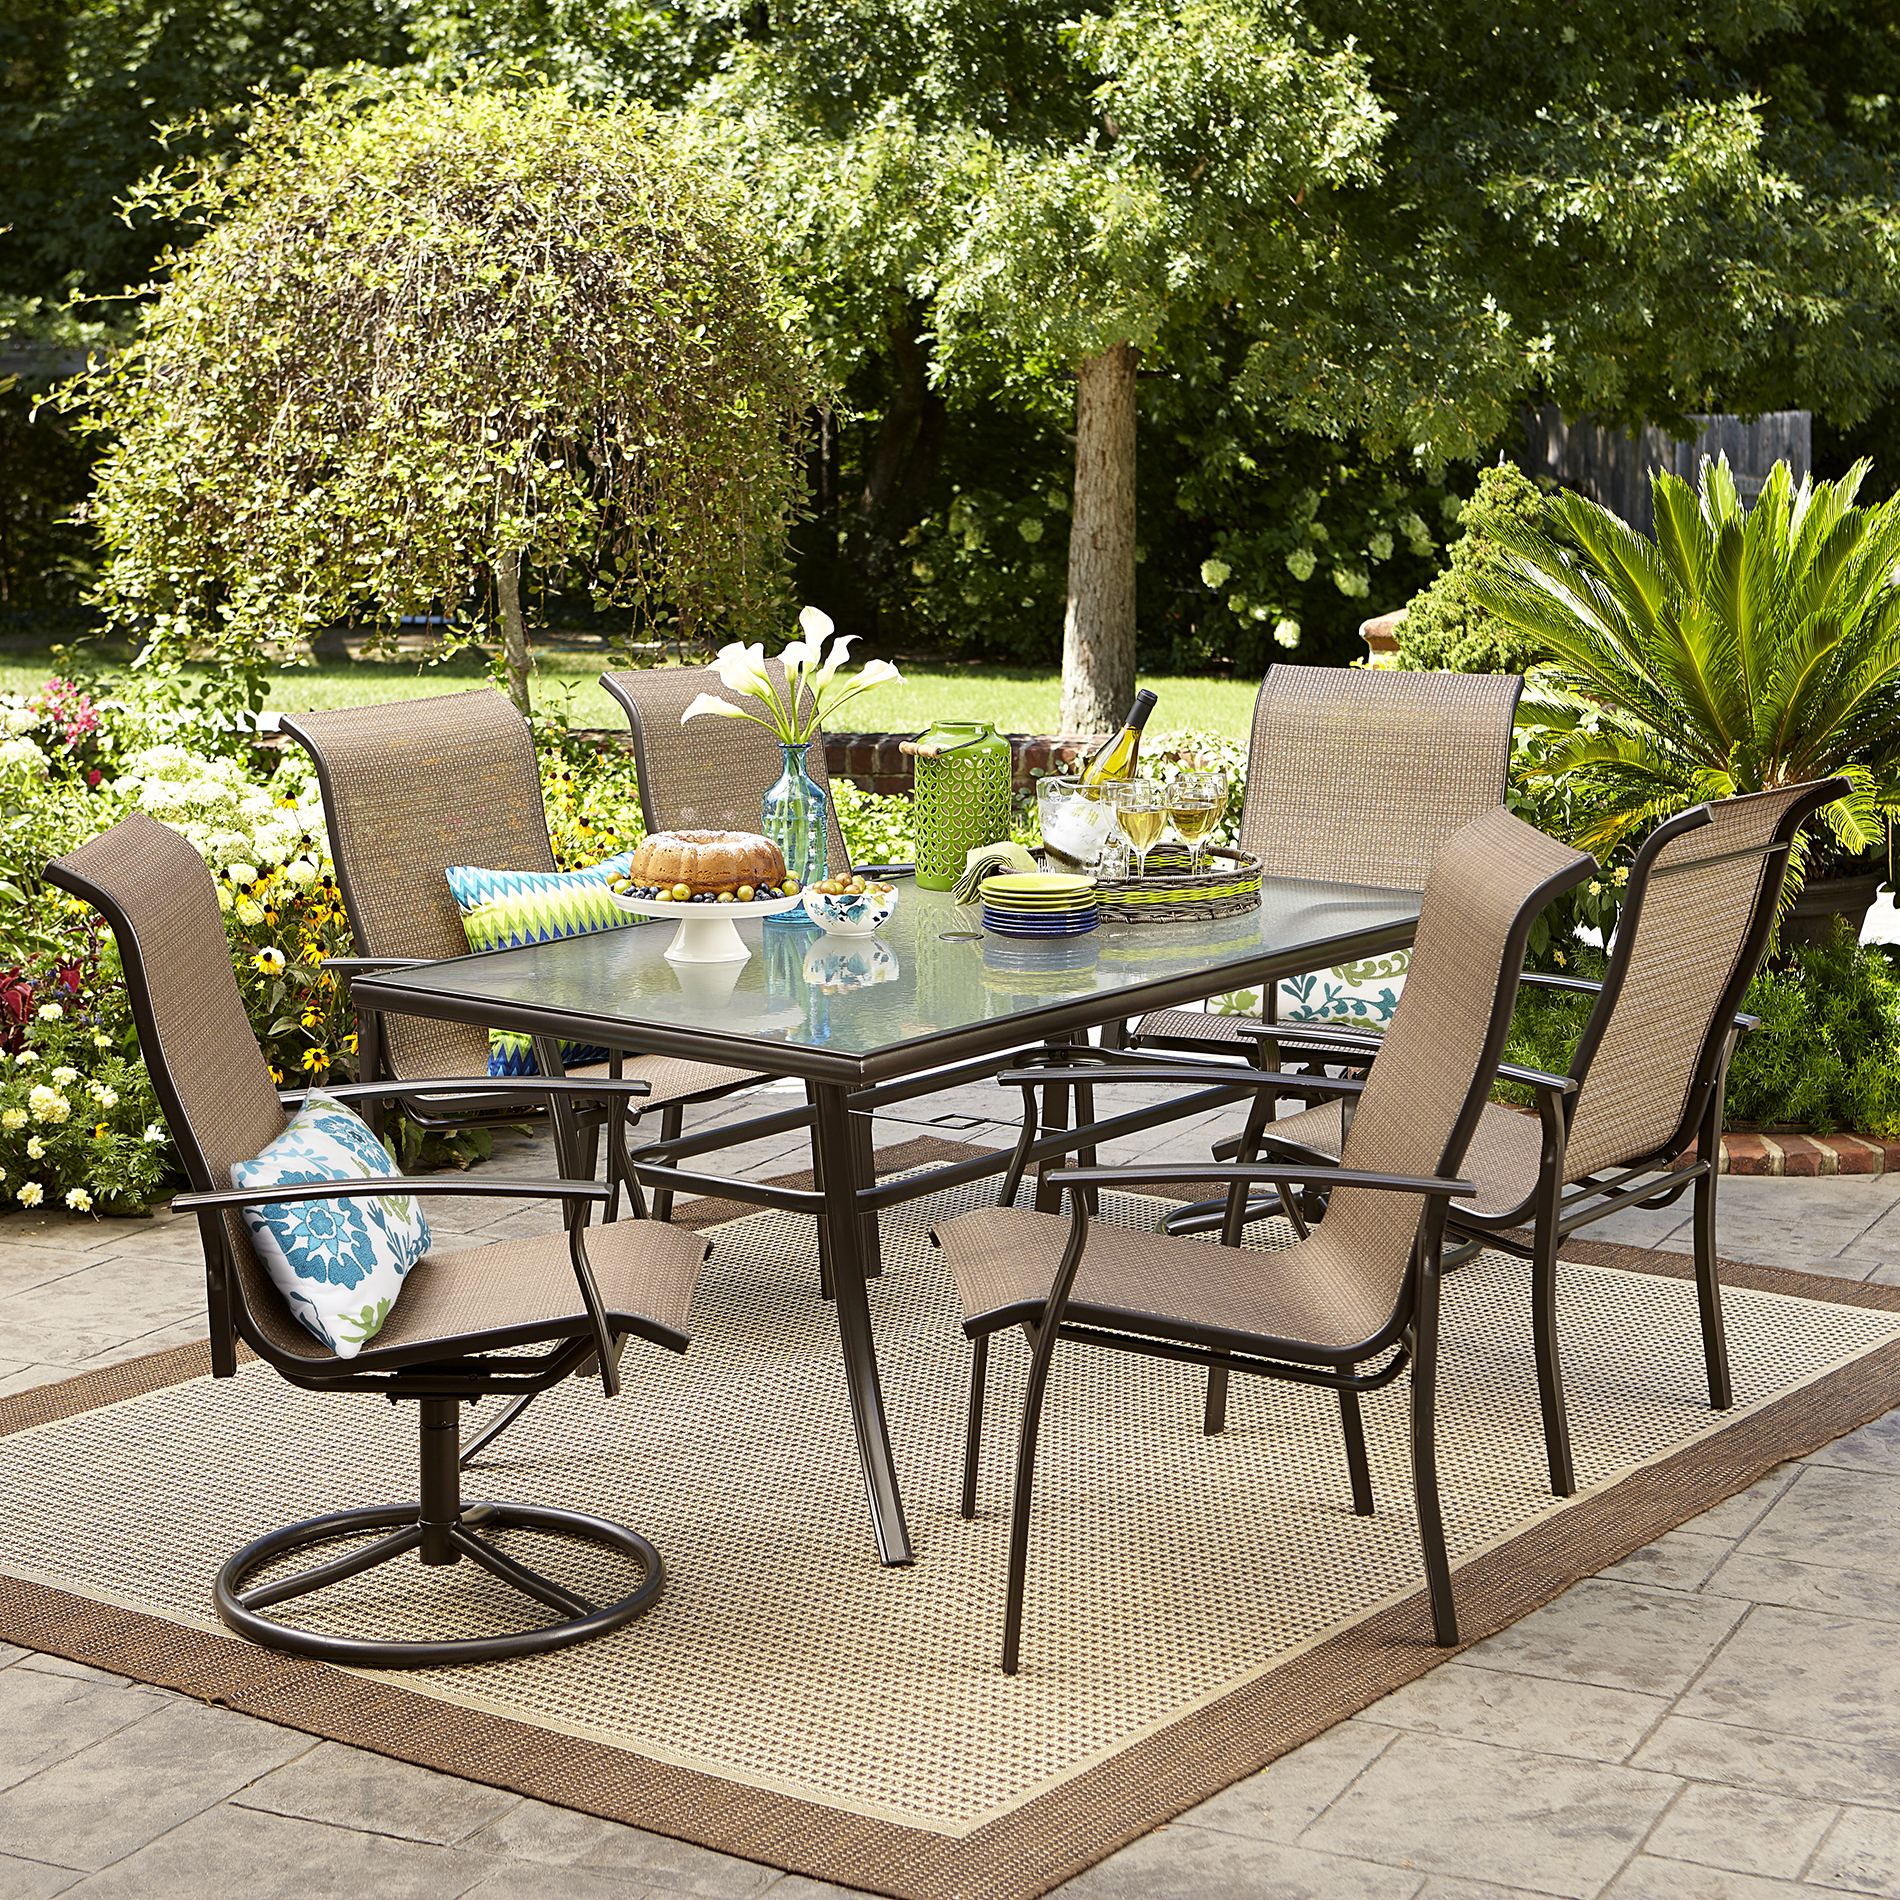 outdoor dining set garden oasis harrison 7 piece dining set ZQAQNXF